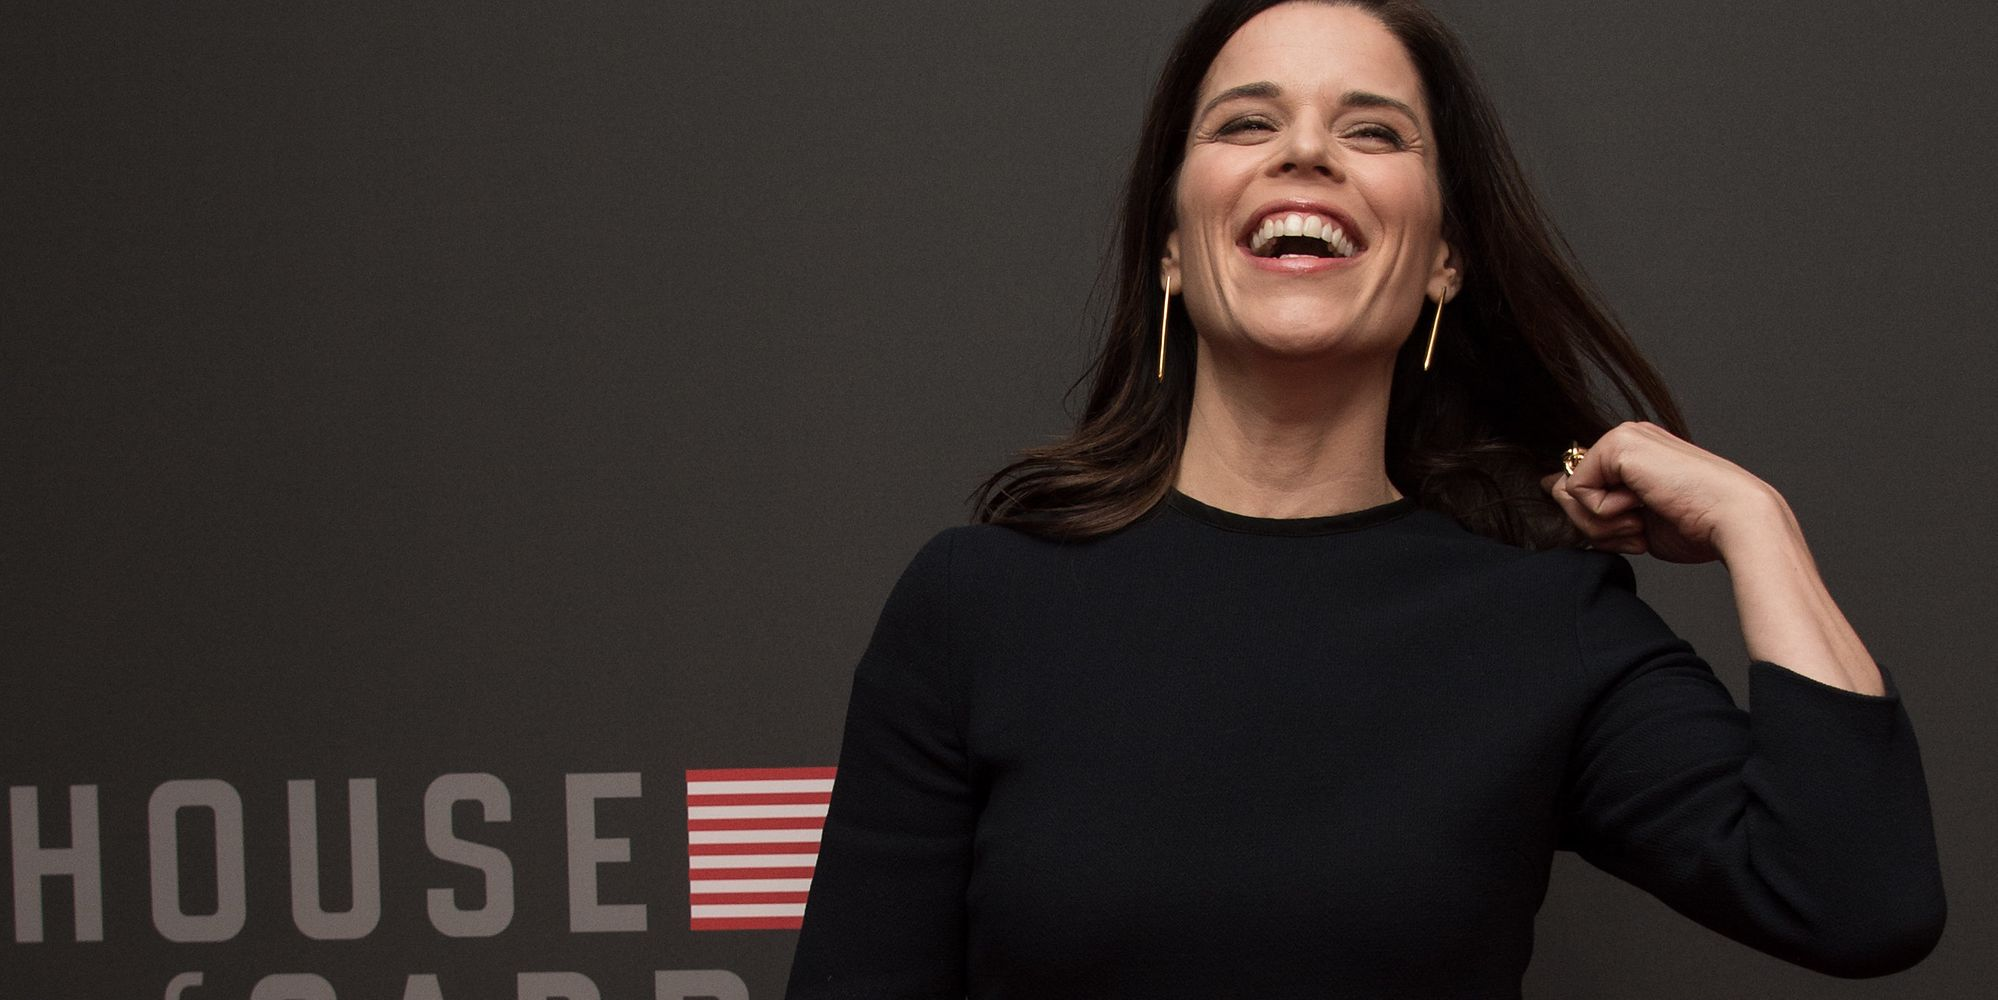 neve campbell says house of cards is wonderful to